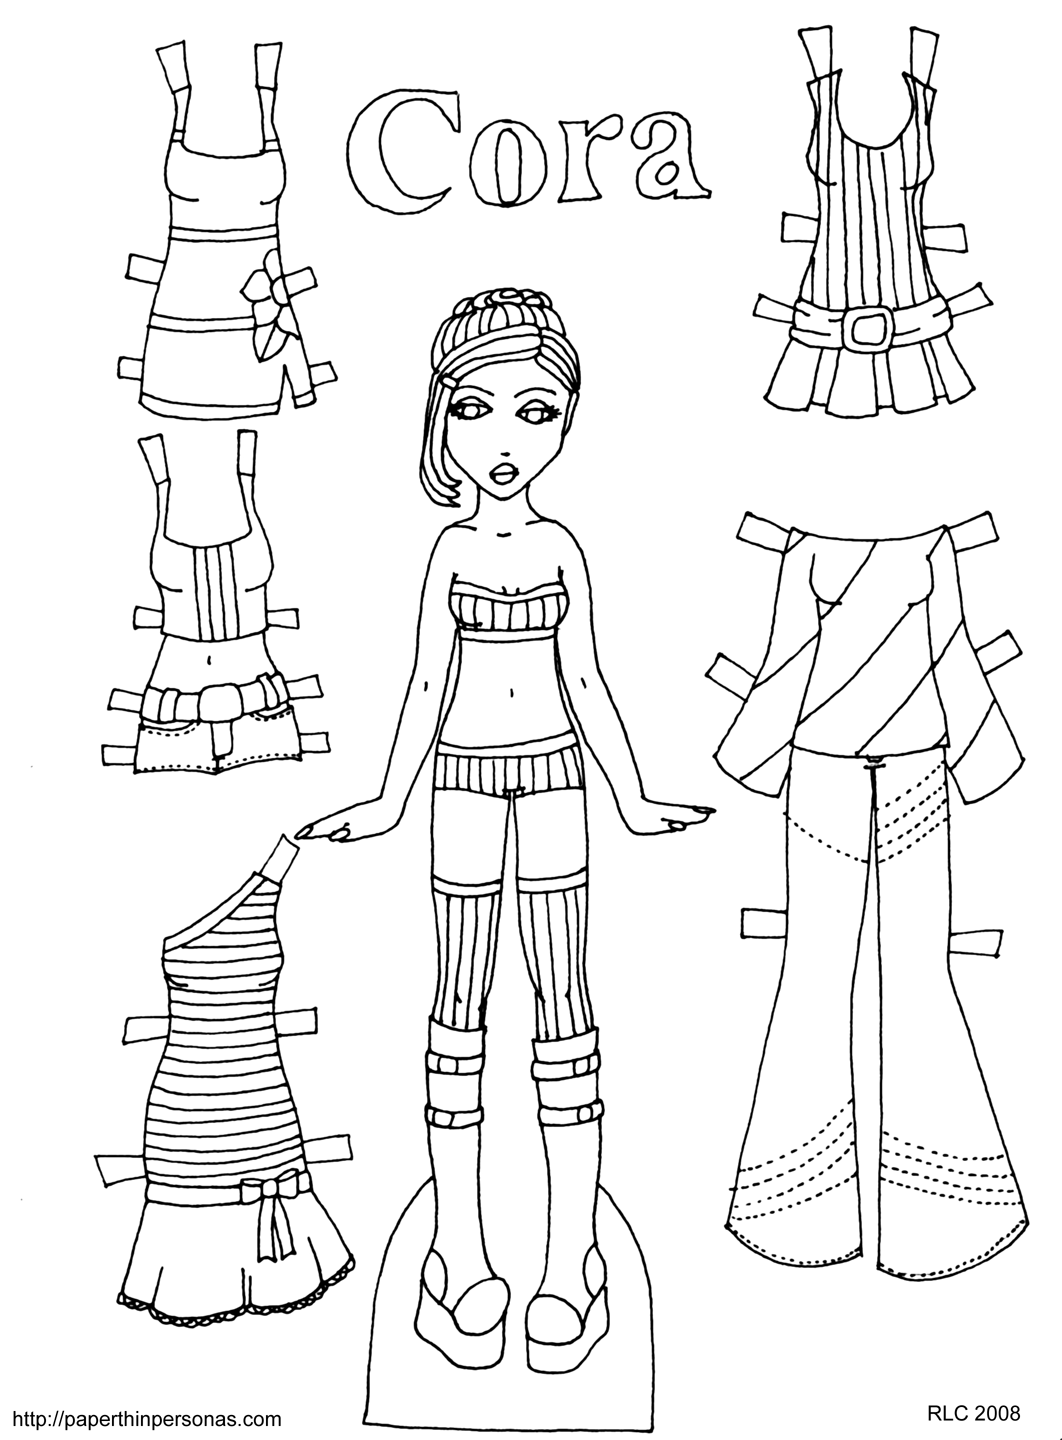 paper doll template with clothes how to make your own printable paper dolls clothes and clothes doll paper template with